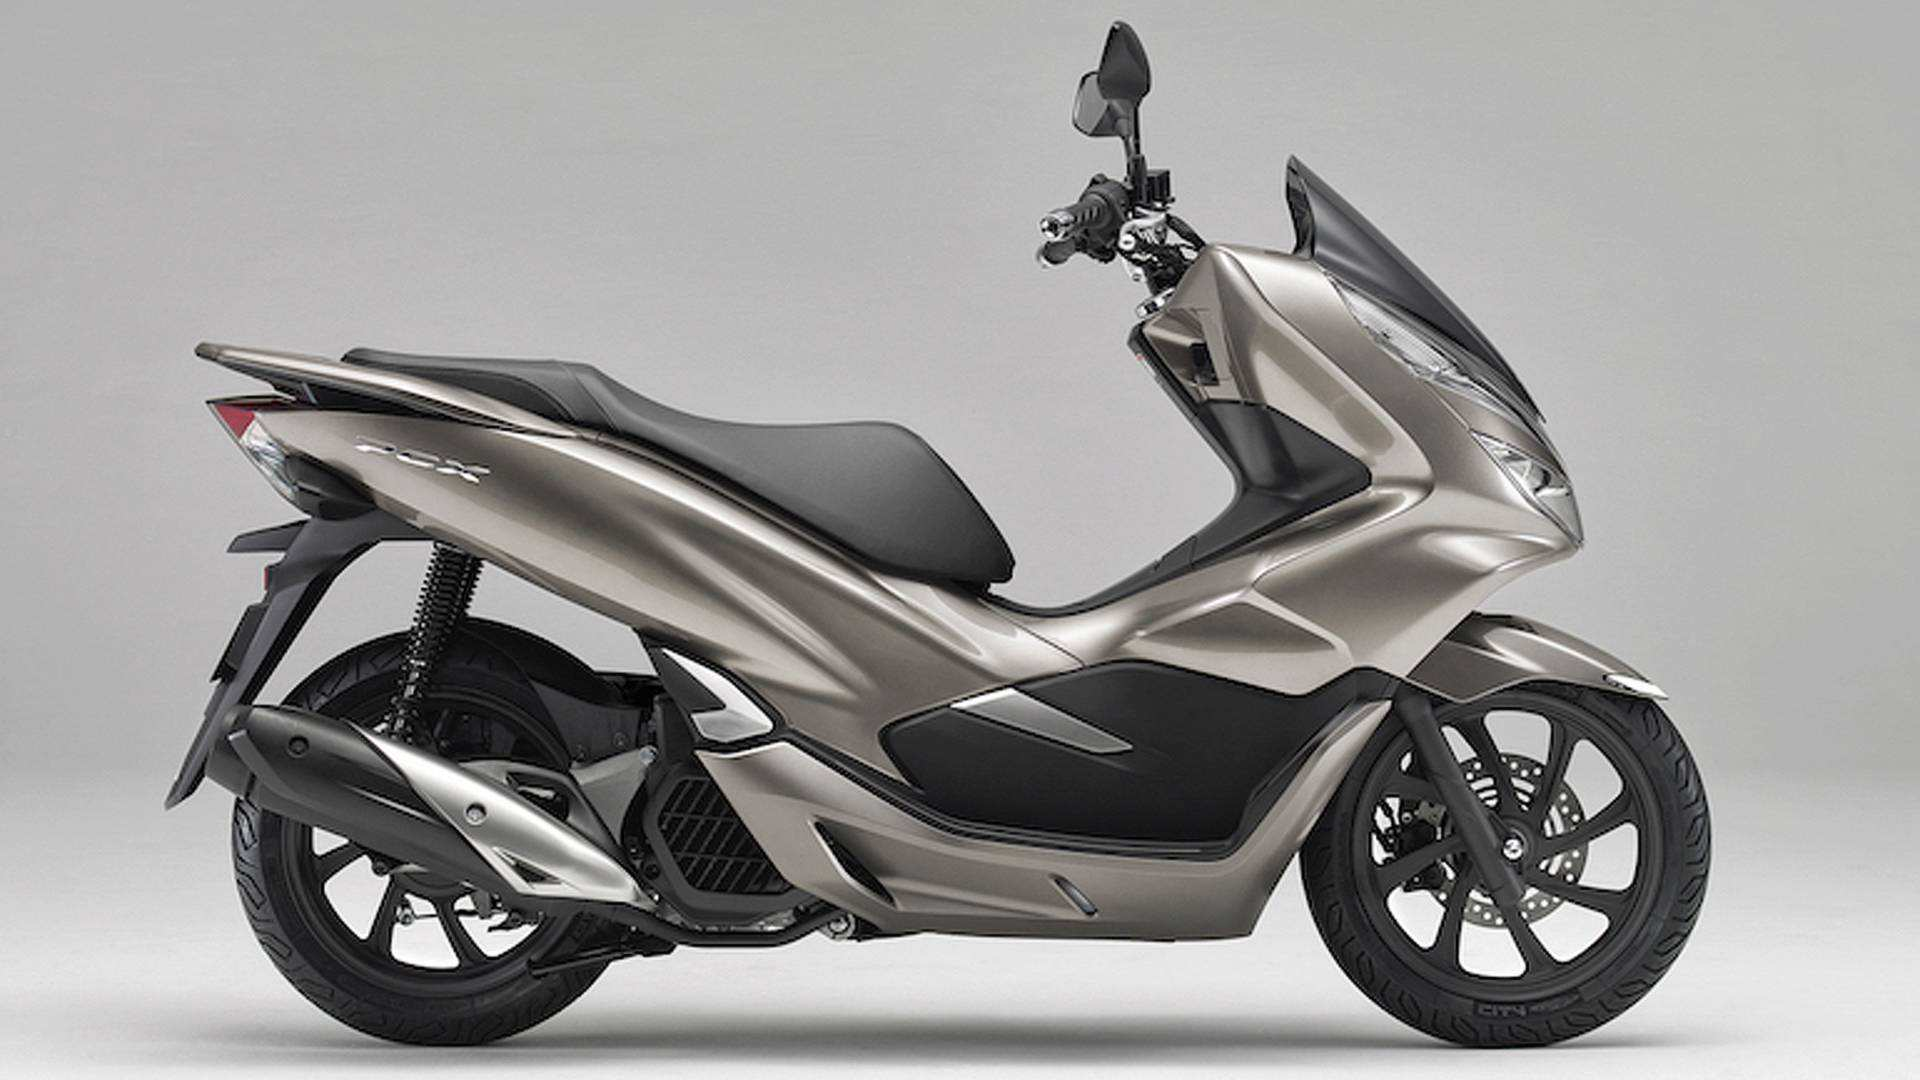 90 New 2020 Honda Pcx150 Wallpaper for 2020 Honda Pcx150